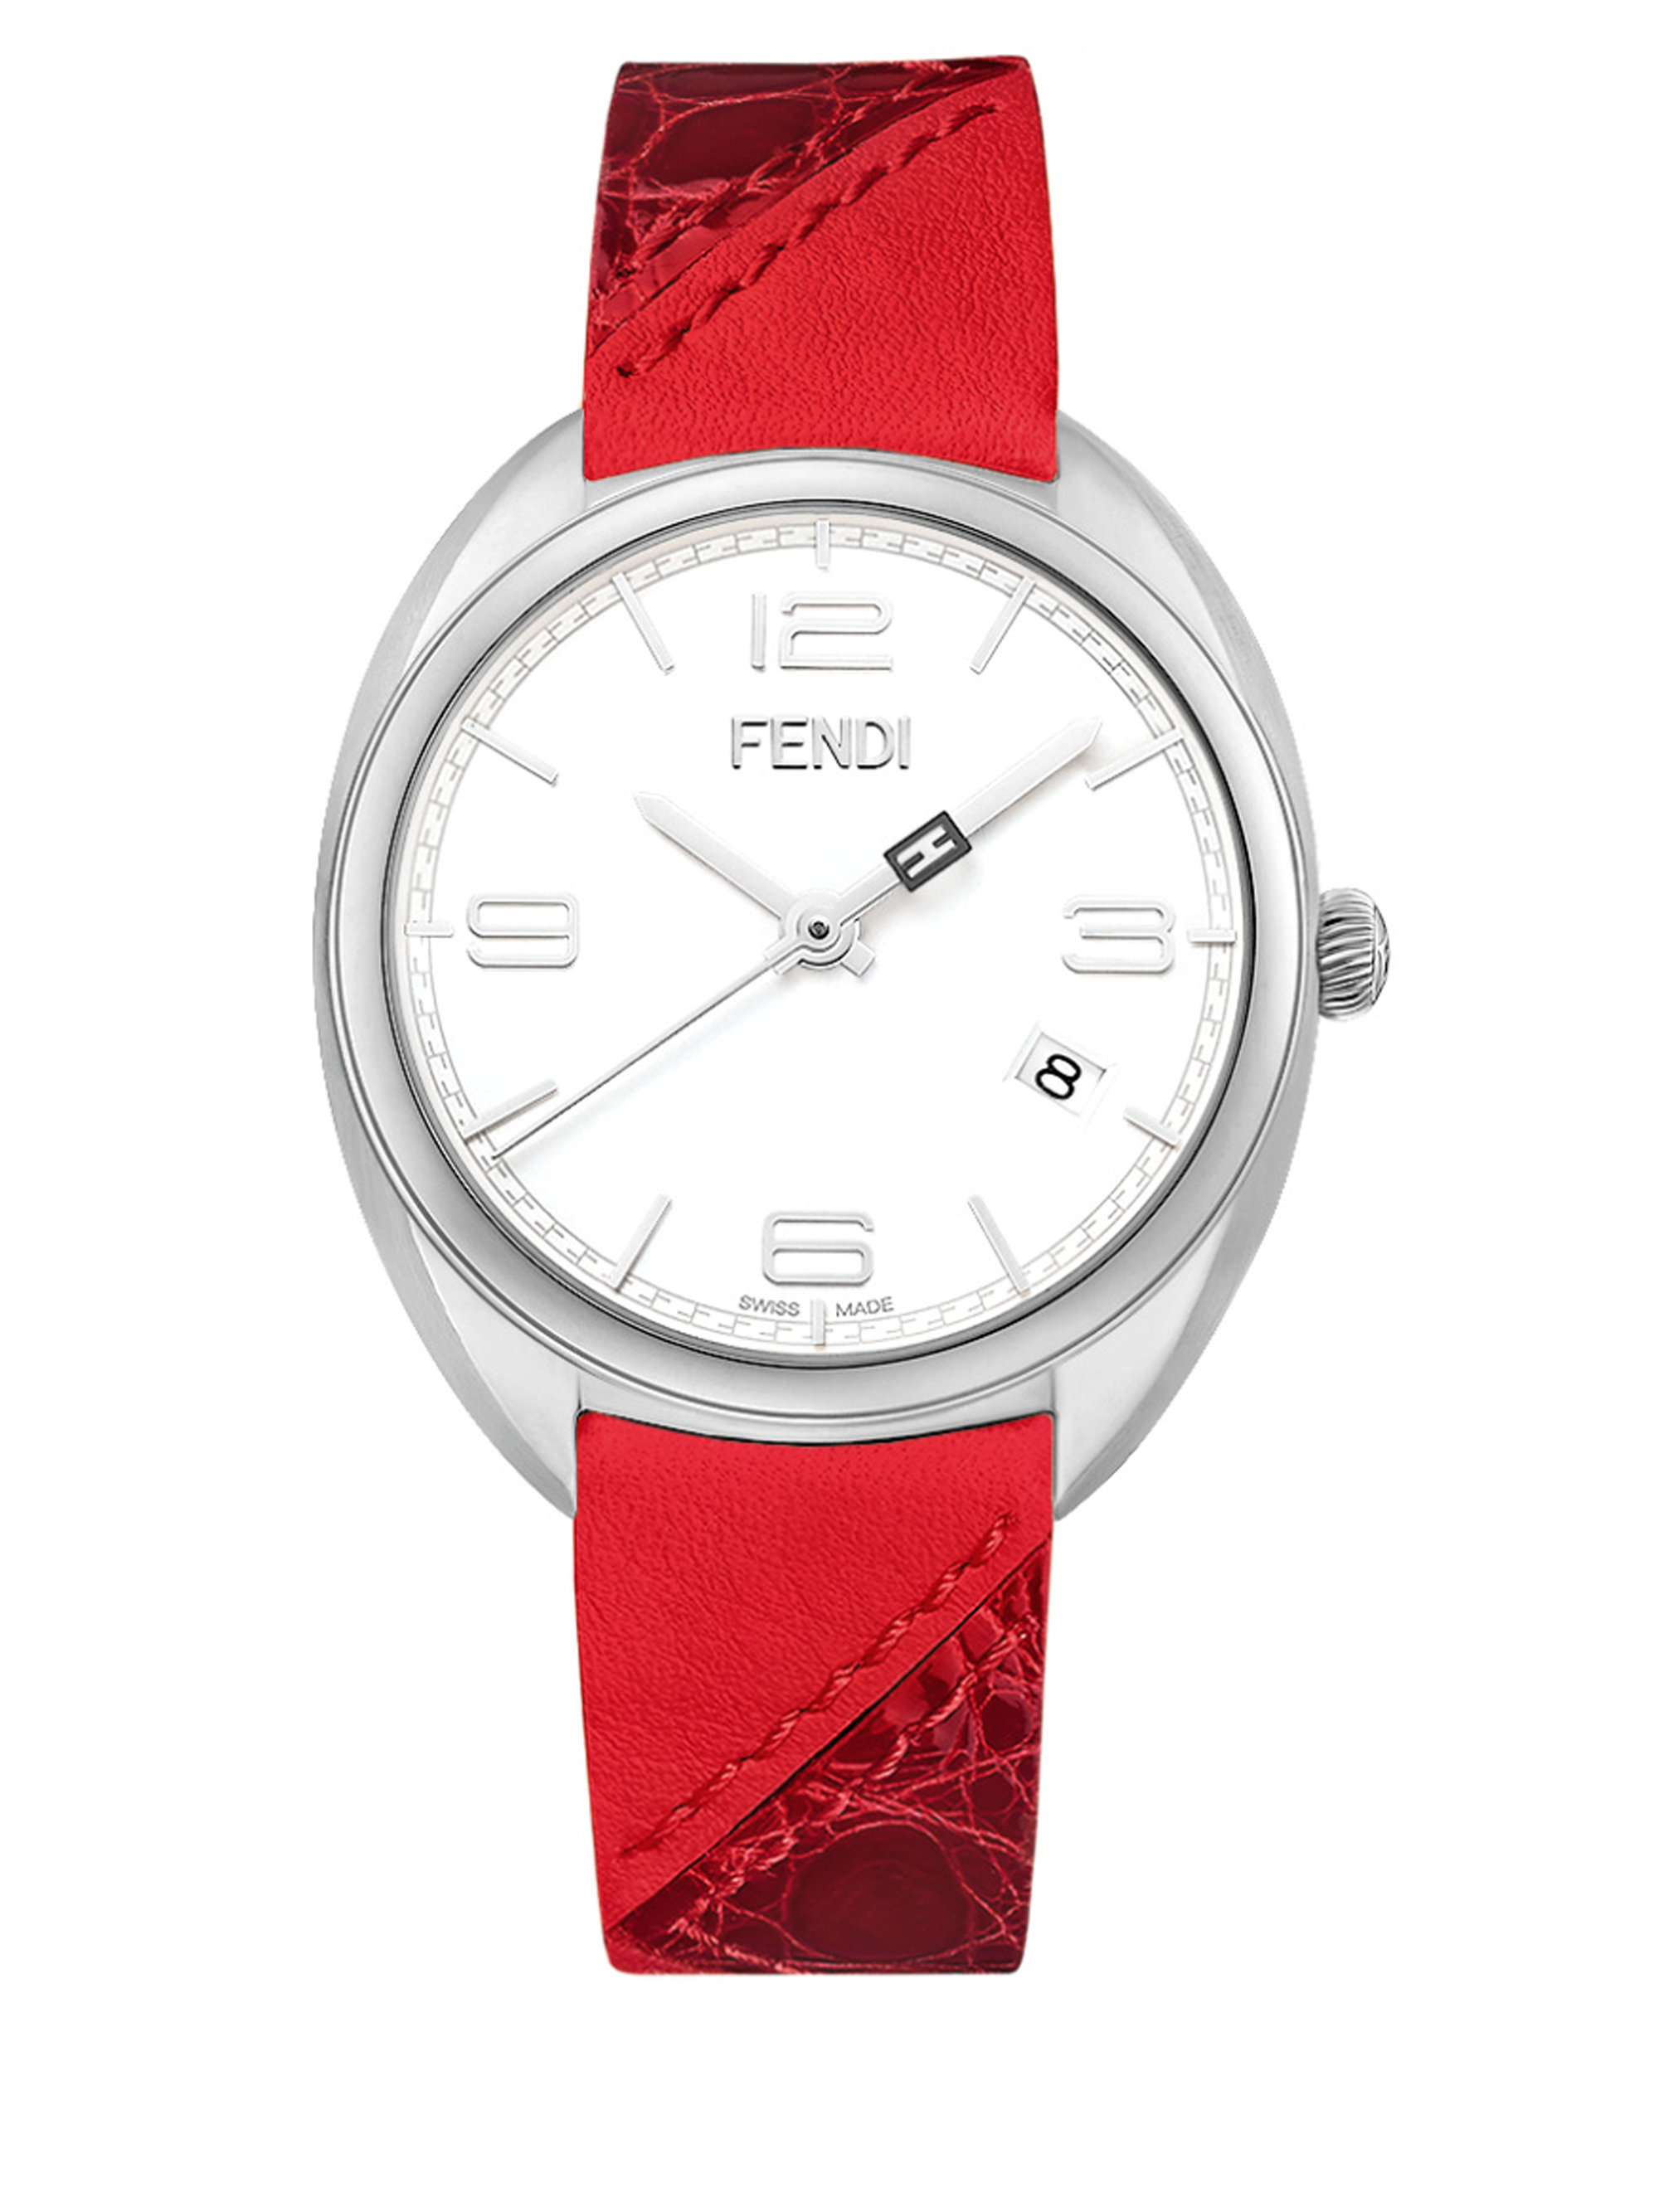 cie moser red watc venturer lotfinder only details the concept cieventurer h watch leather gnv lot watchthe watches